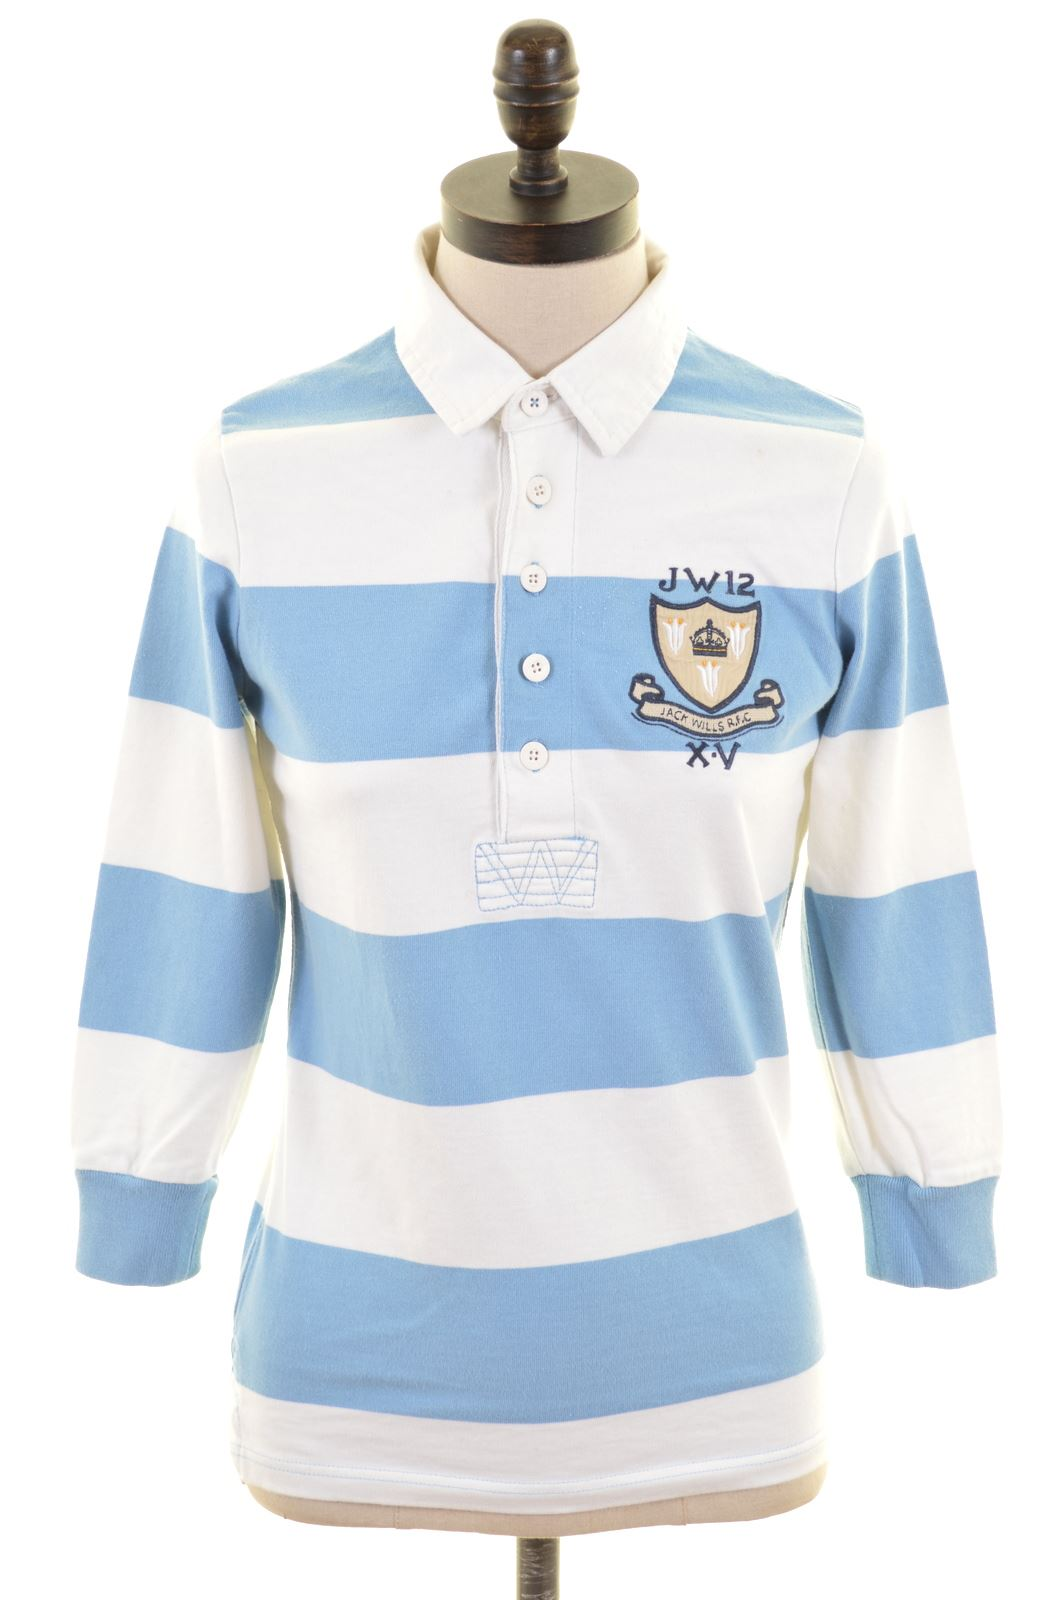 Details About Jack Wills Womens Polo Shirt Long Sleeve Uk 8 Small Blue Striped Cotton Ld22